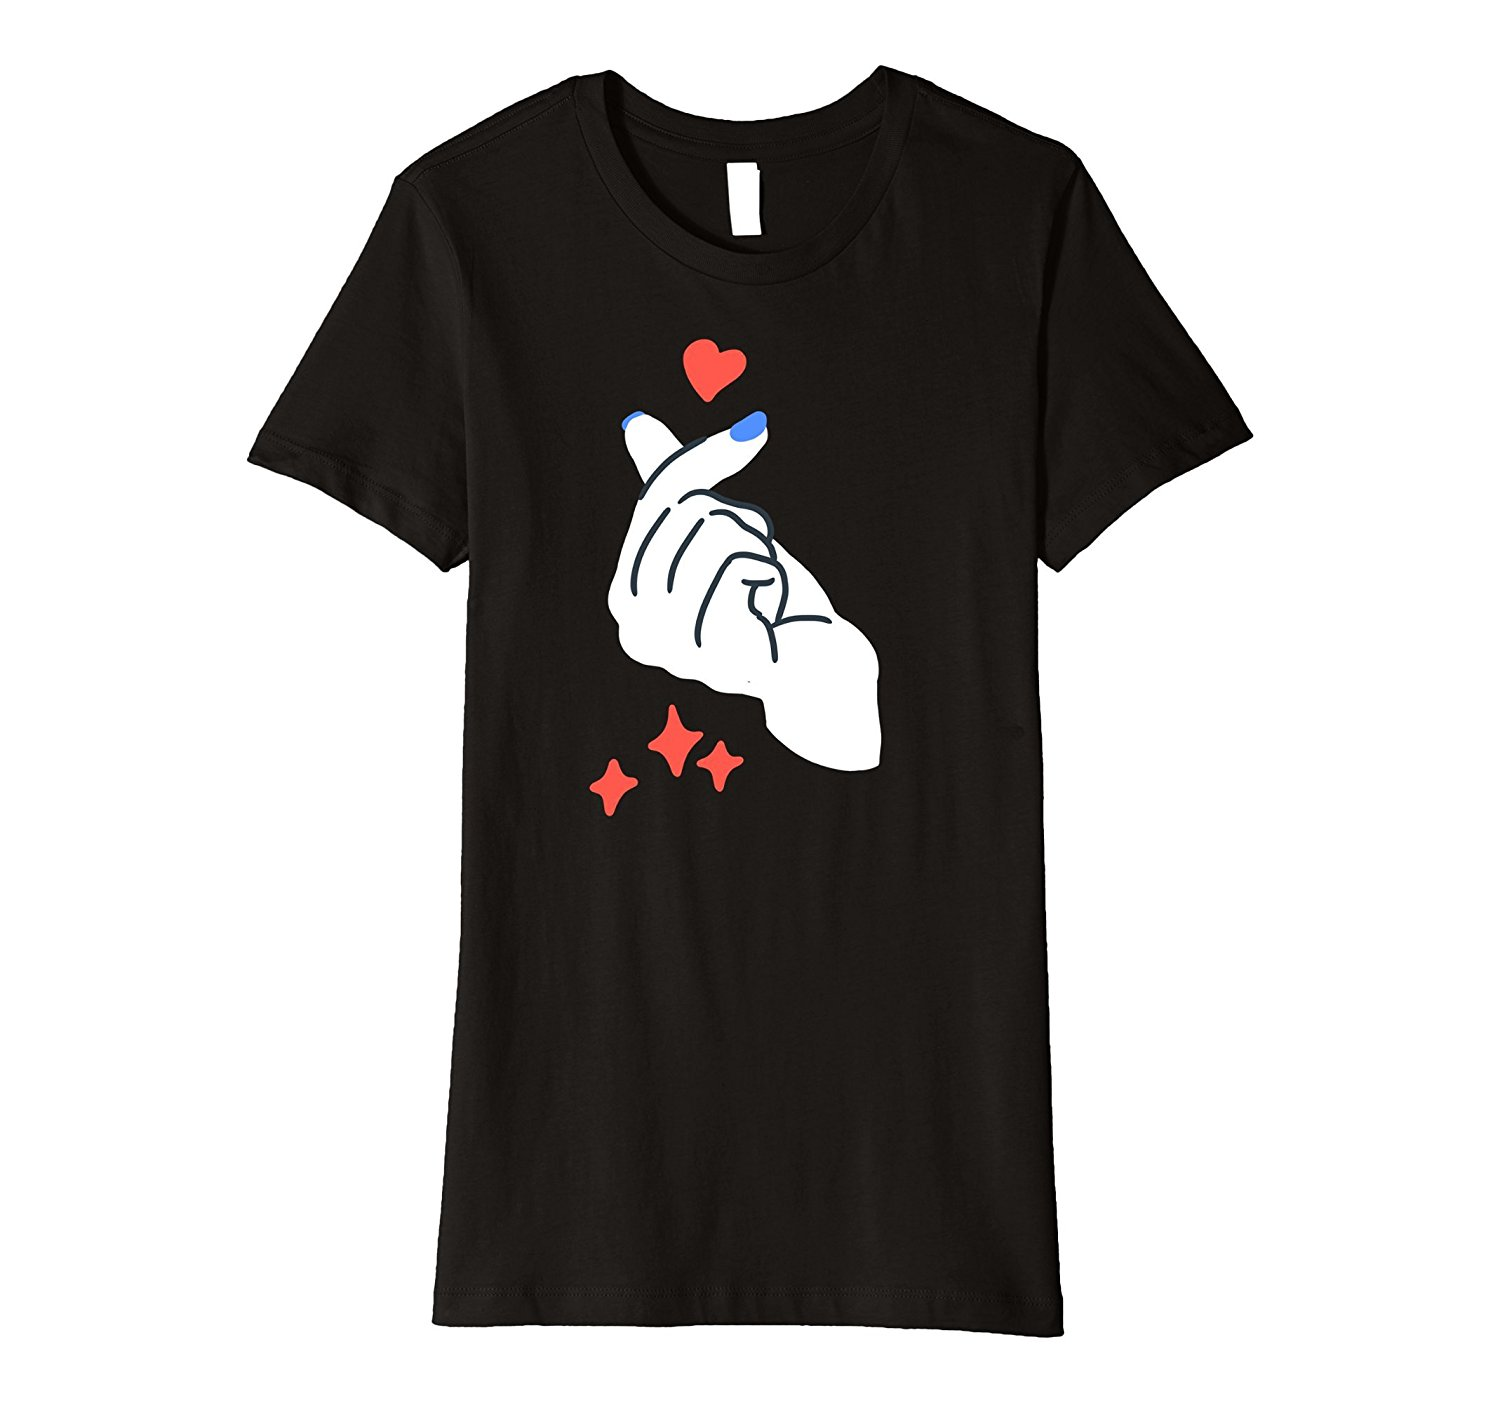 Heart design t shirt - Korean Finger Heart I Love You T Shirt Saranghae Kpop Tee Design T Shirt Cute